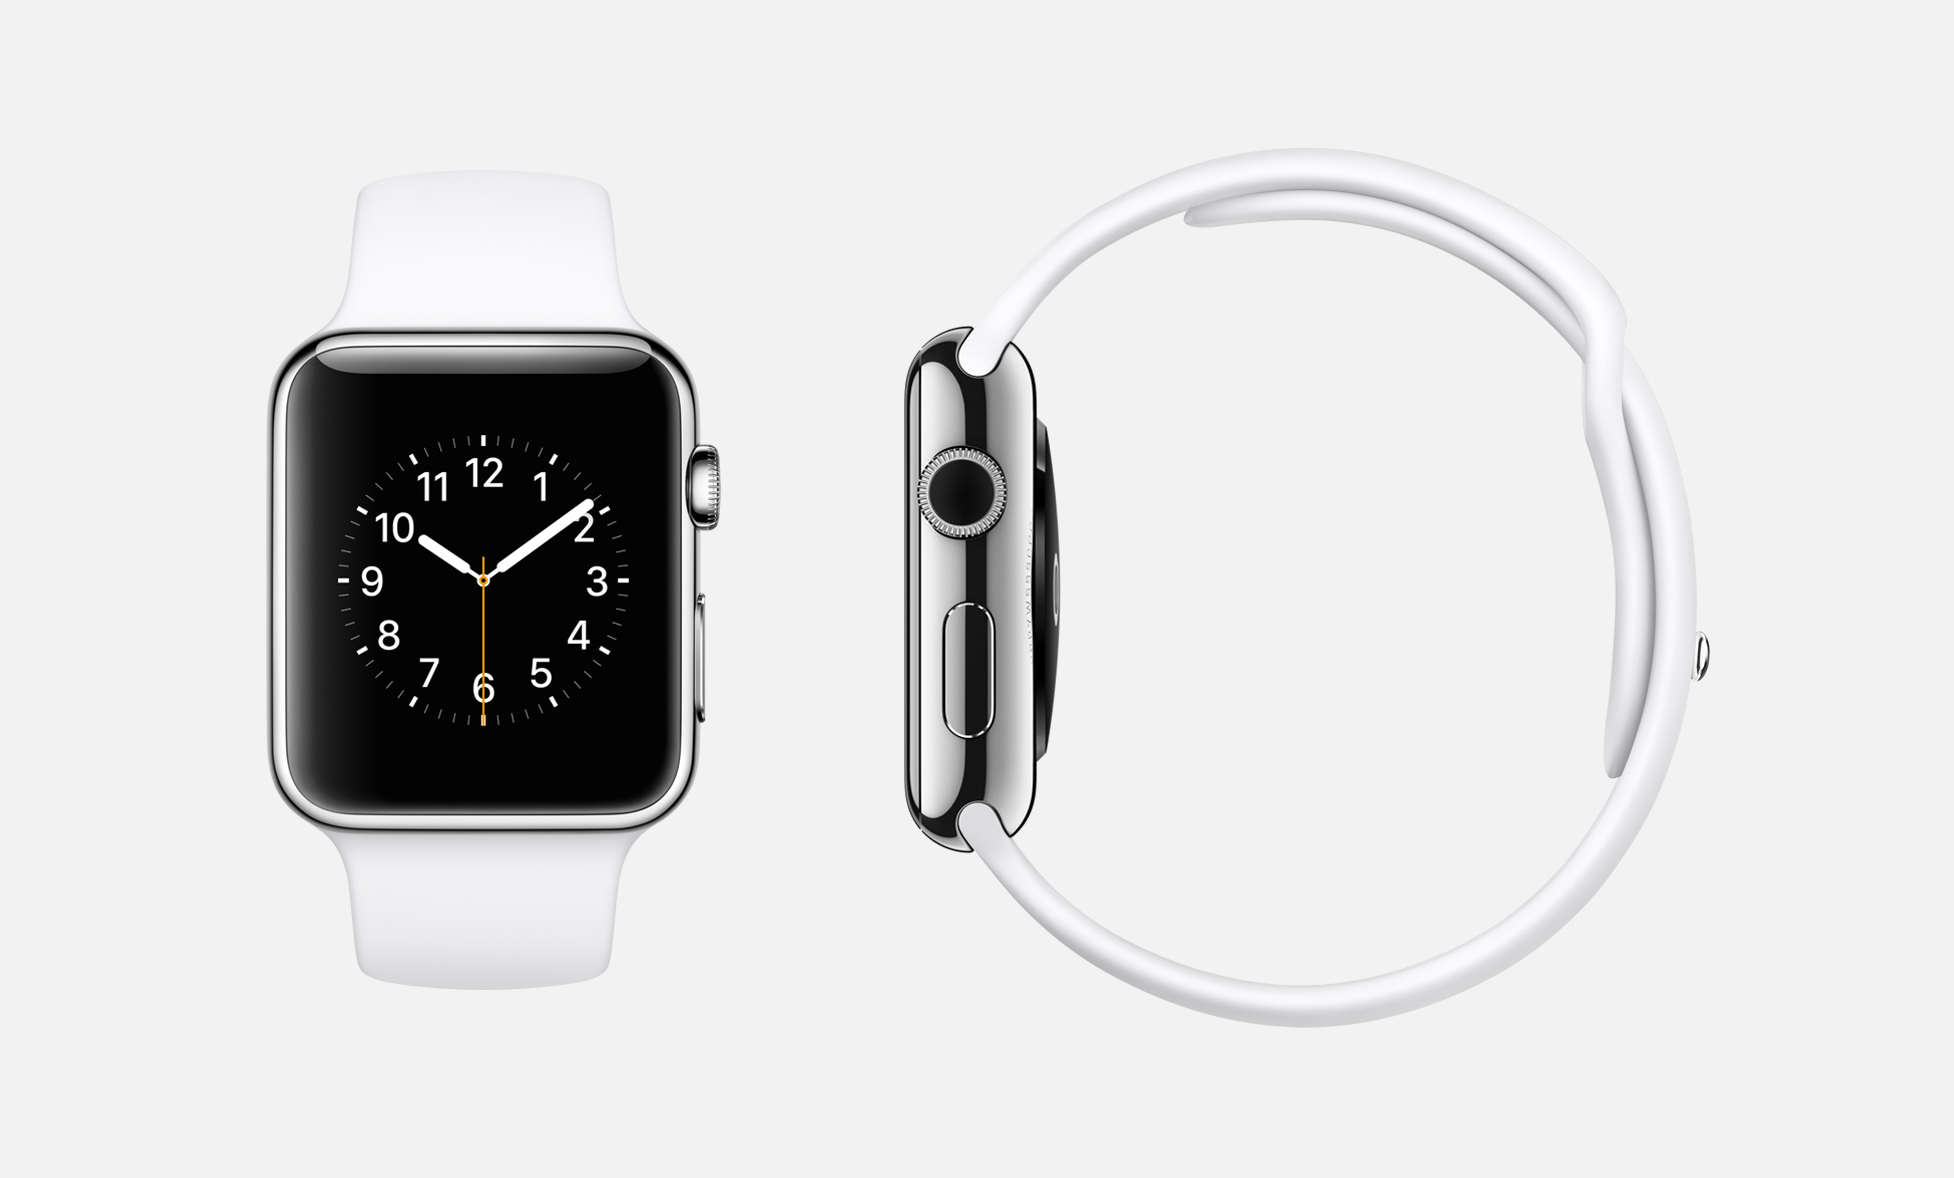 Apple unveils new iPhone 6 and Apple Watch